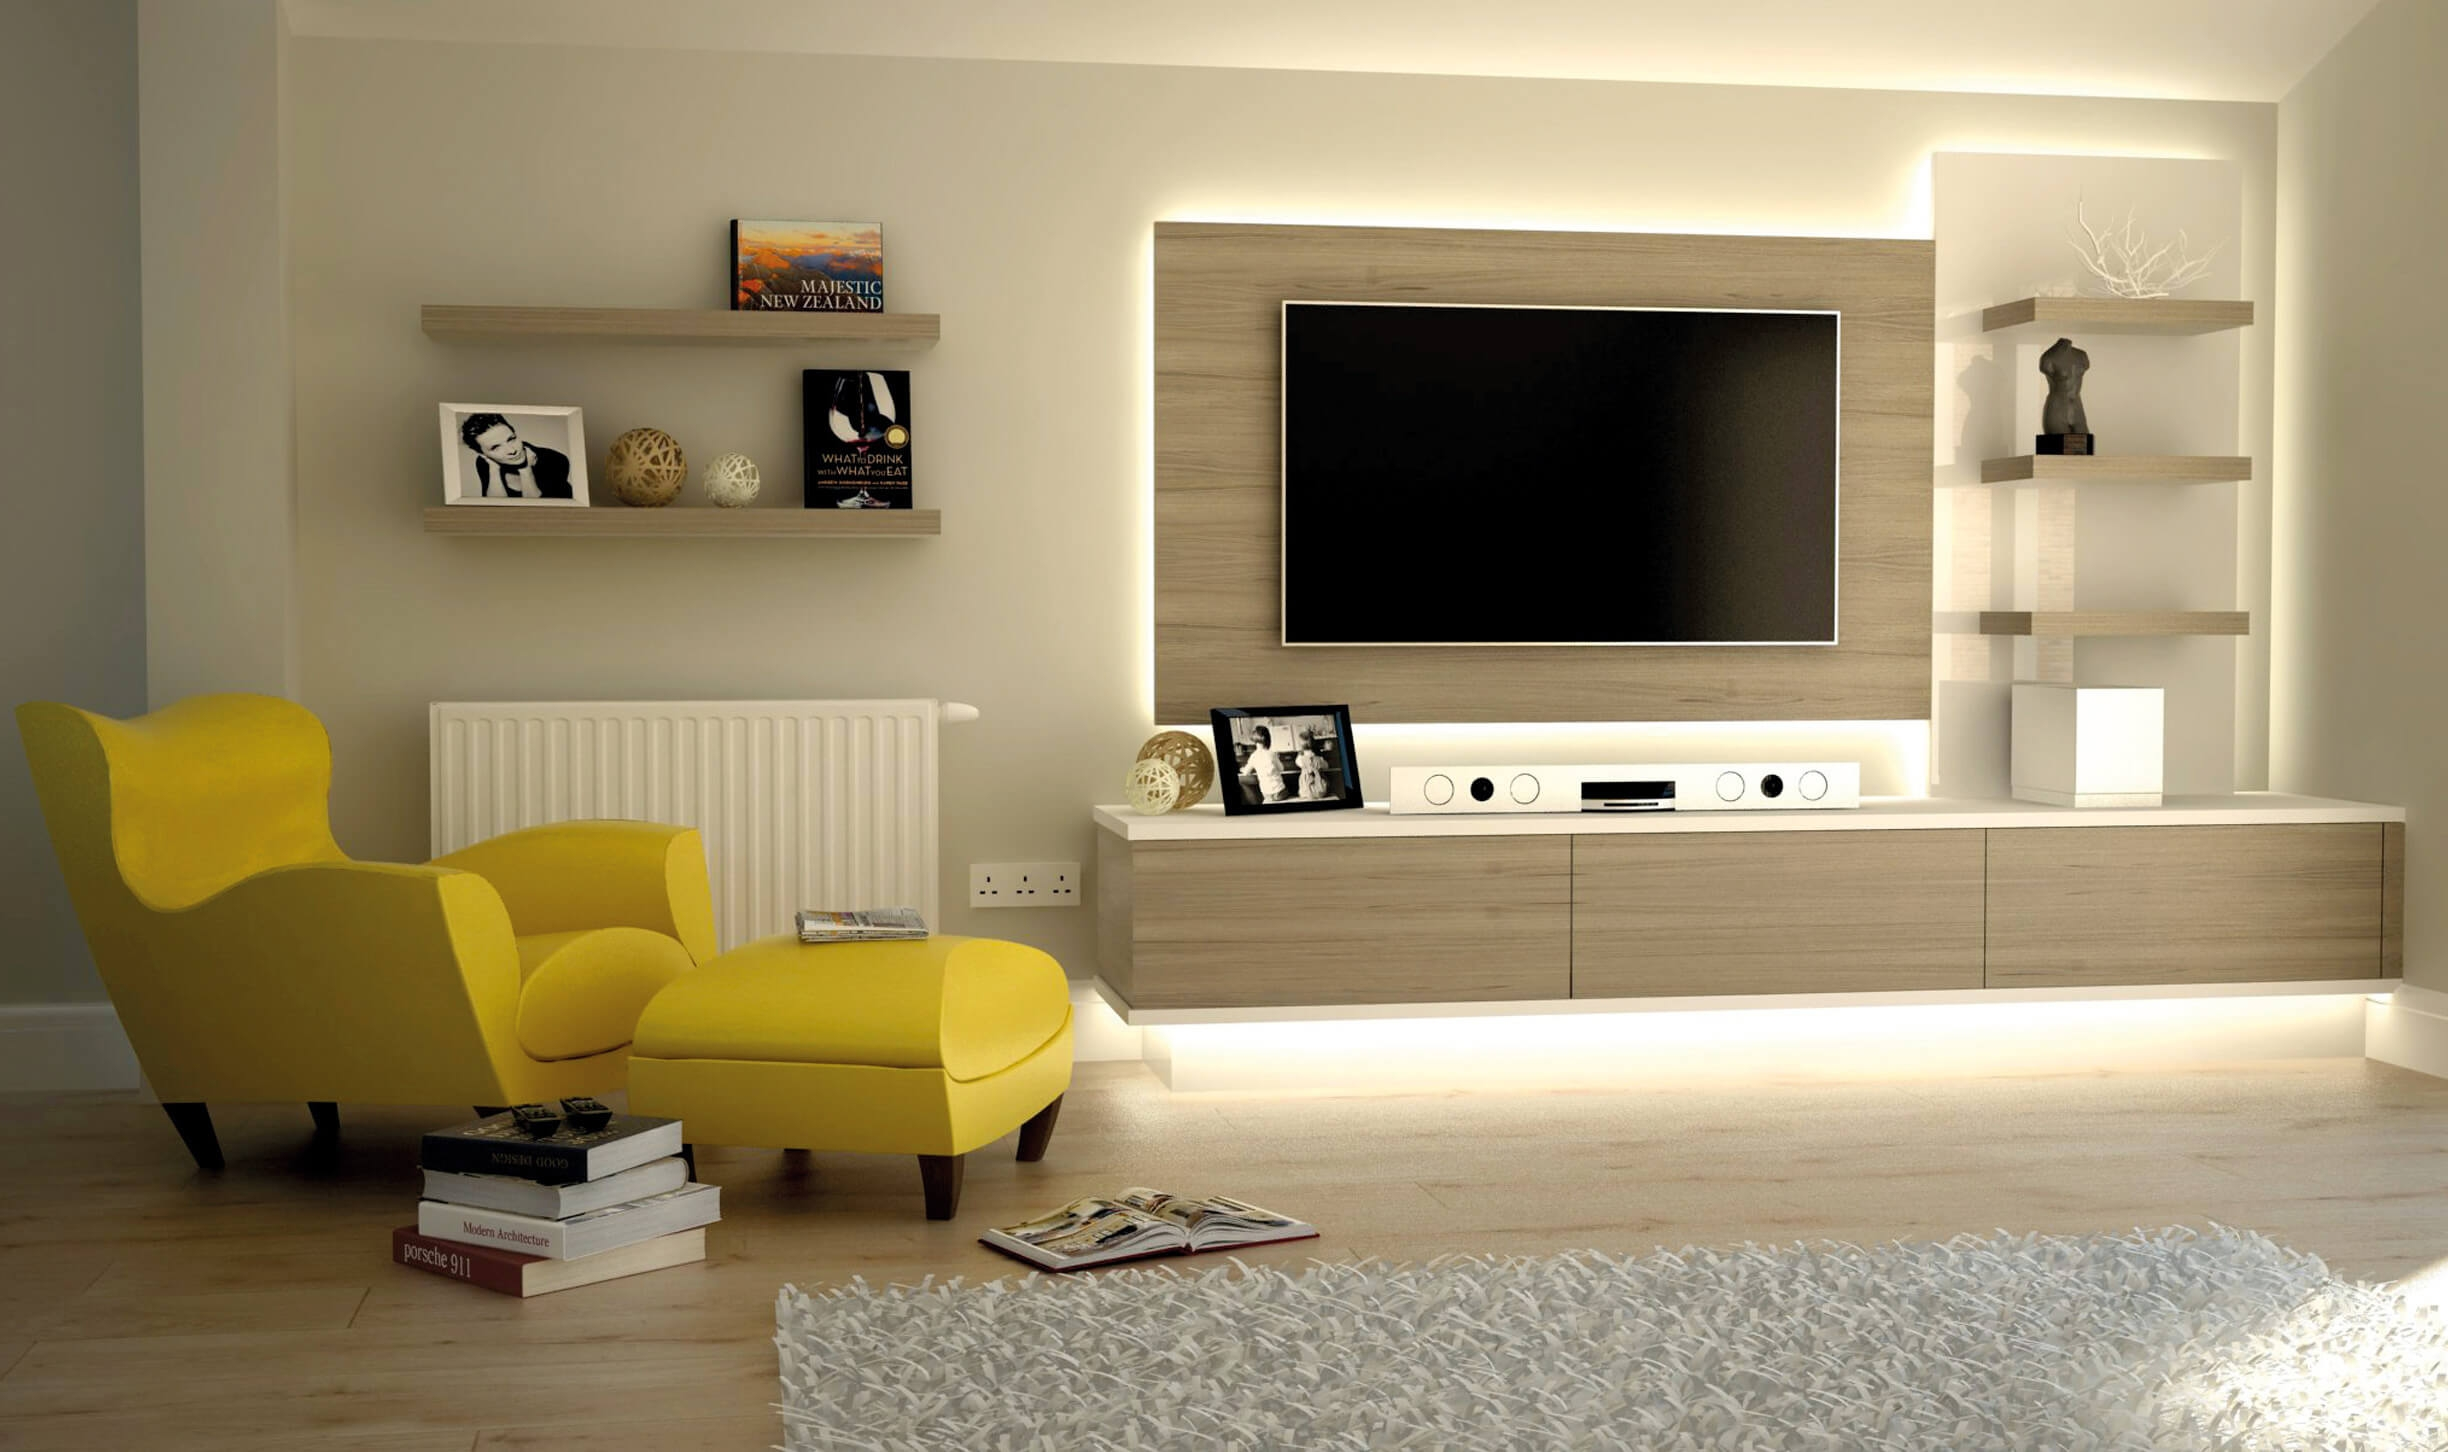 Bespoke Tv Cabinets Bookcases And Storage Units For Over 50 Throughout Fitted Cabinets Living Room (View 5 of 15)